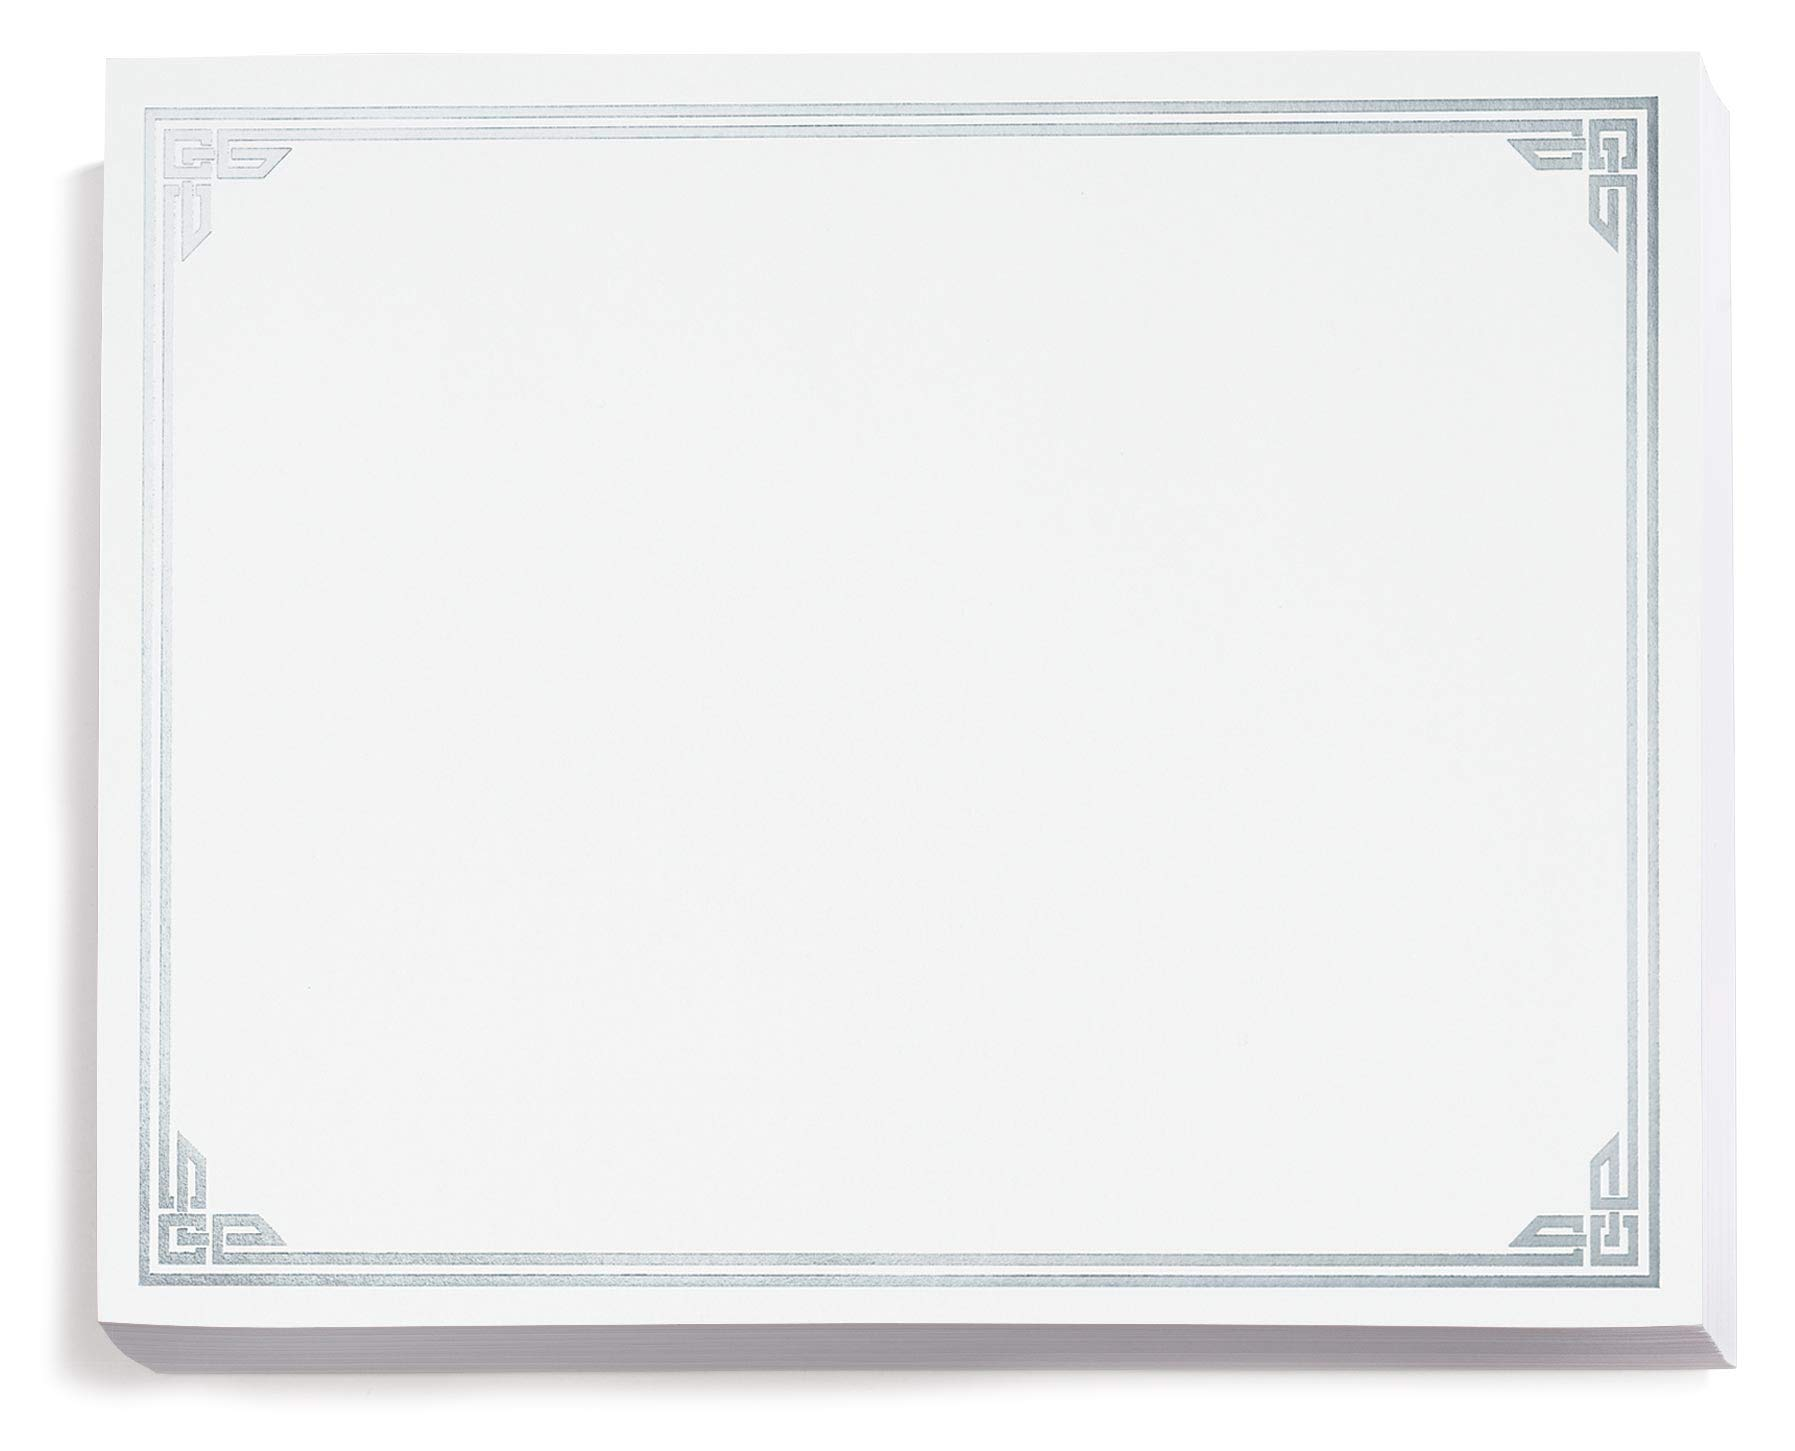 Silver on White Classic Specialty Certificates, 8½ x11, Foil Accents, 50 Count by PaperDirect